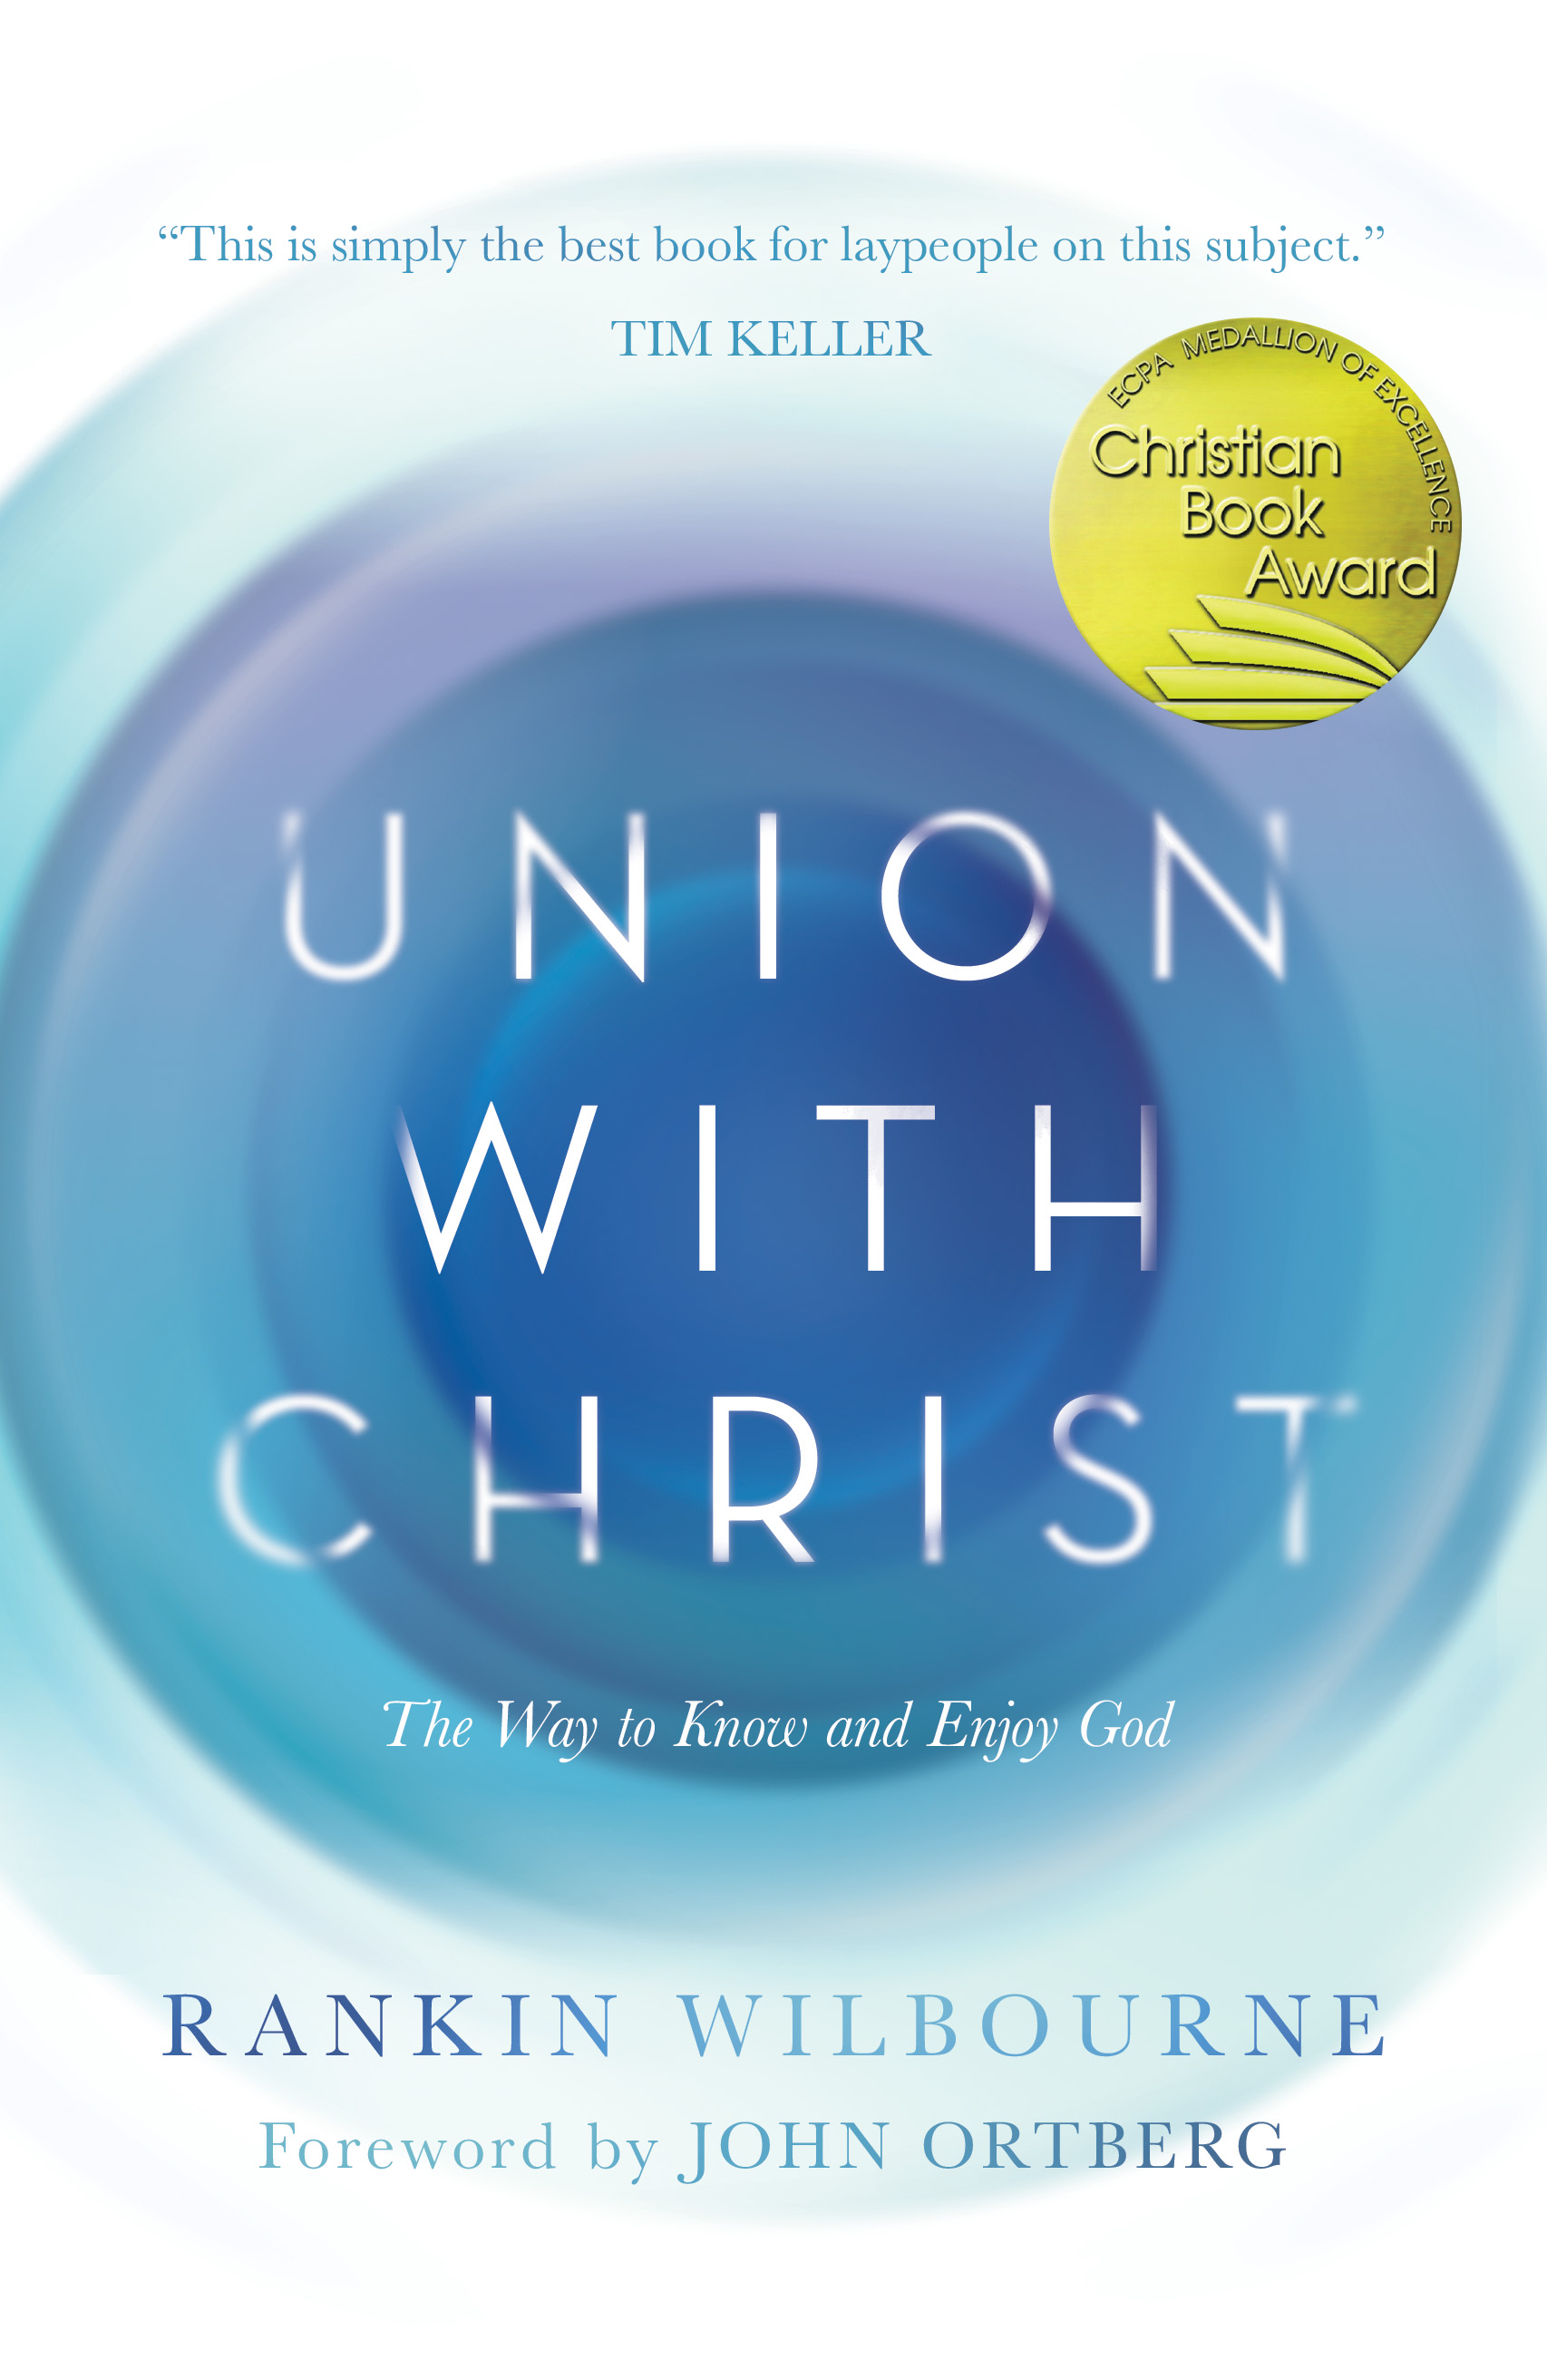 Union with Christ The Way to Know and Enjoy God